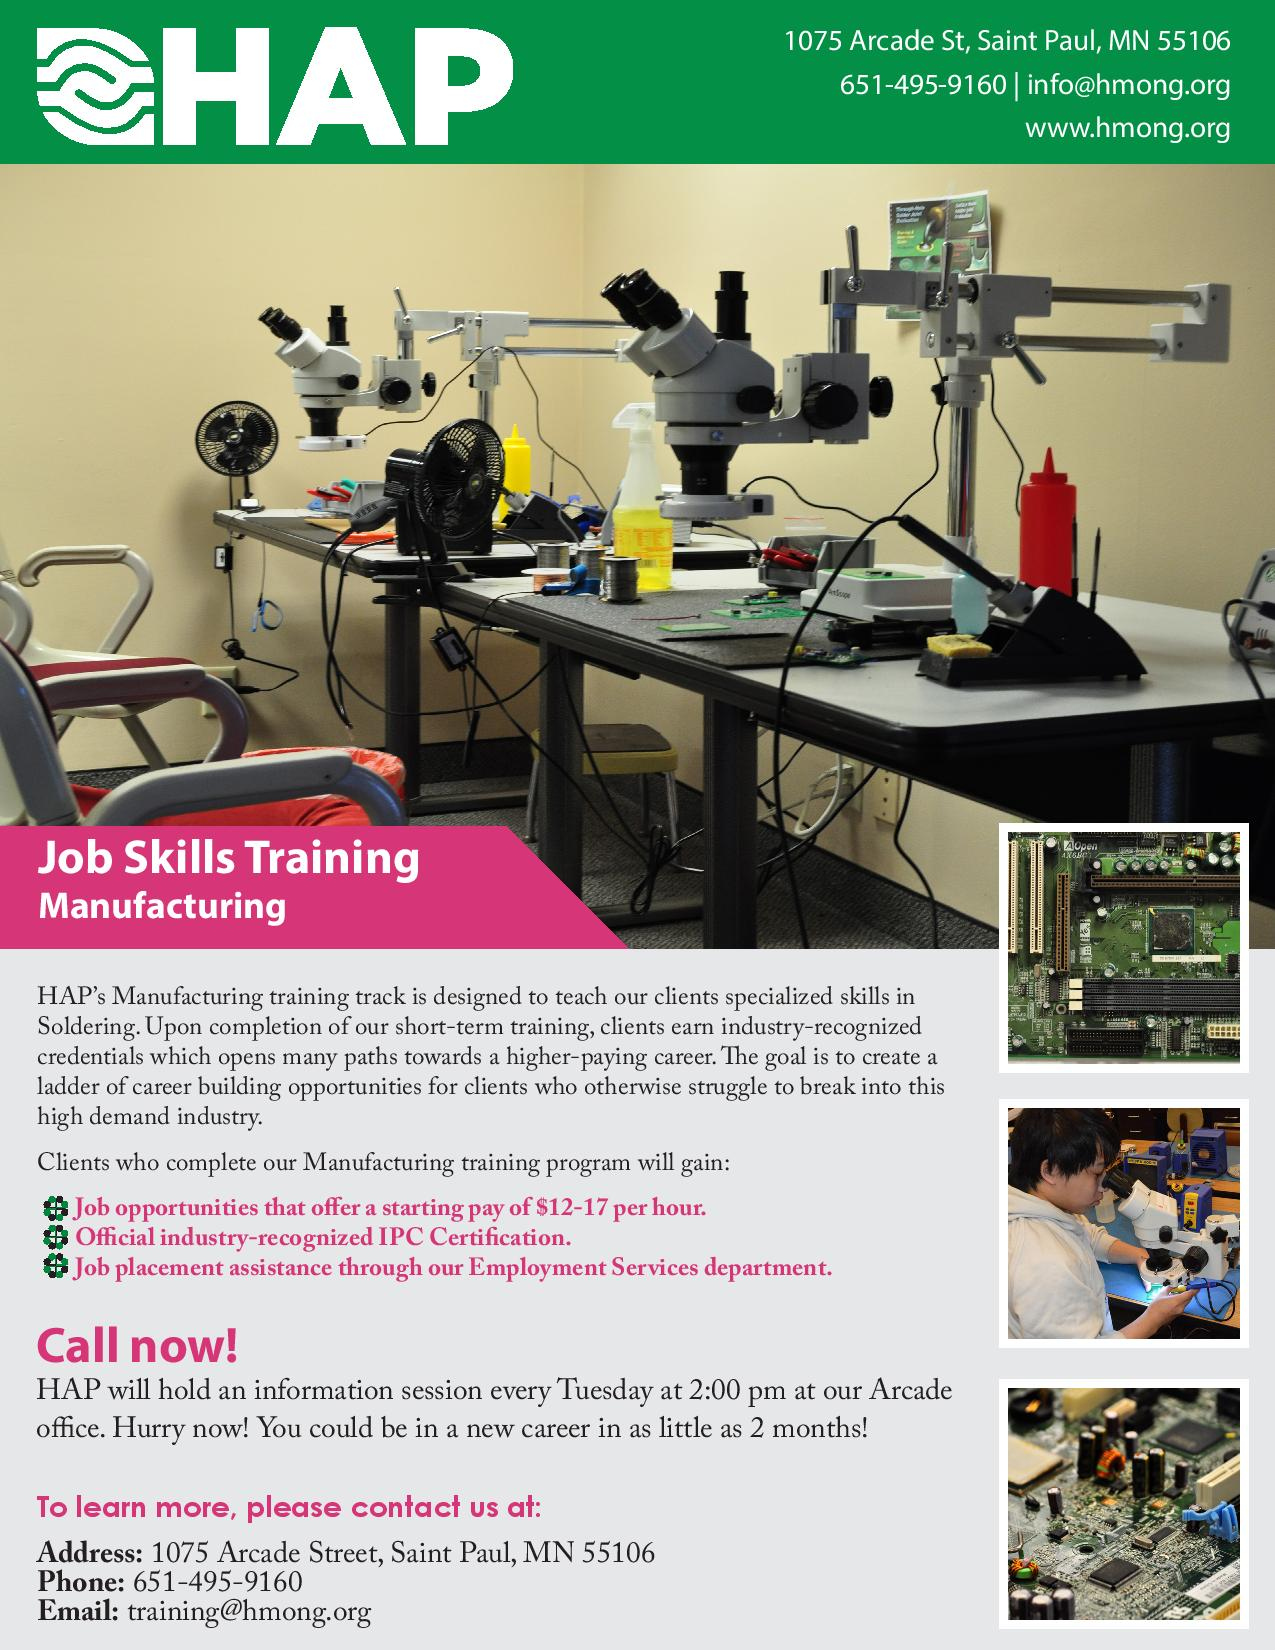 Manufacturing_Training_Flyer-page-001.jpg